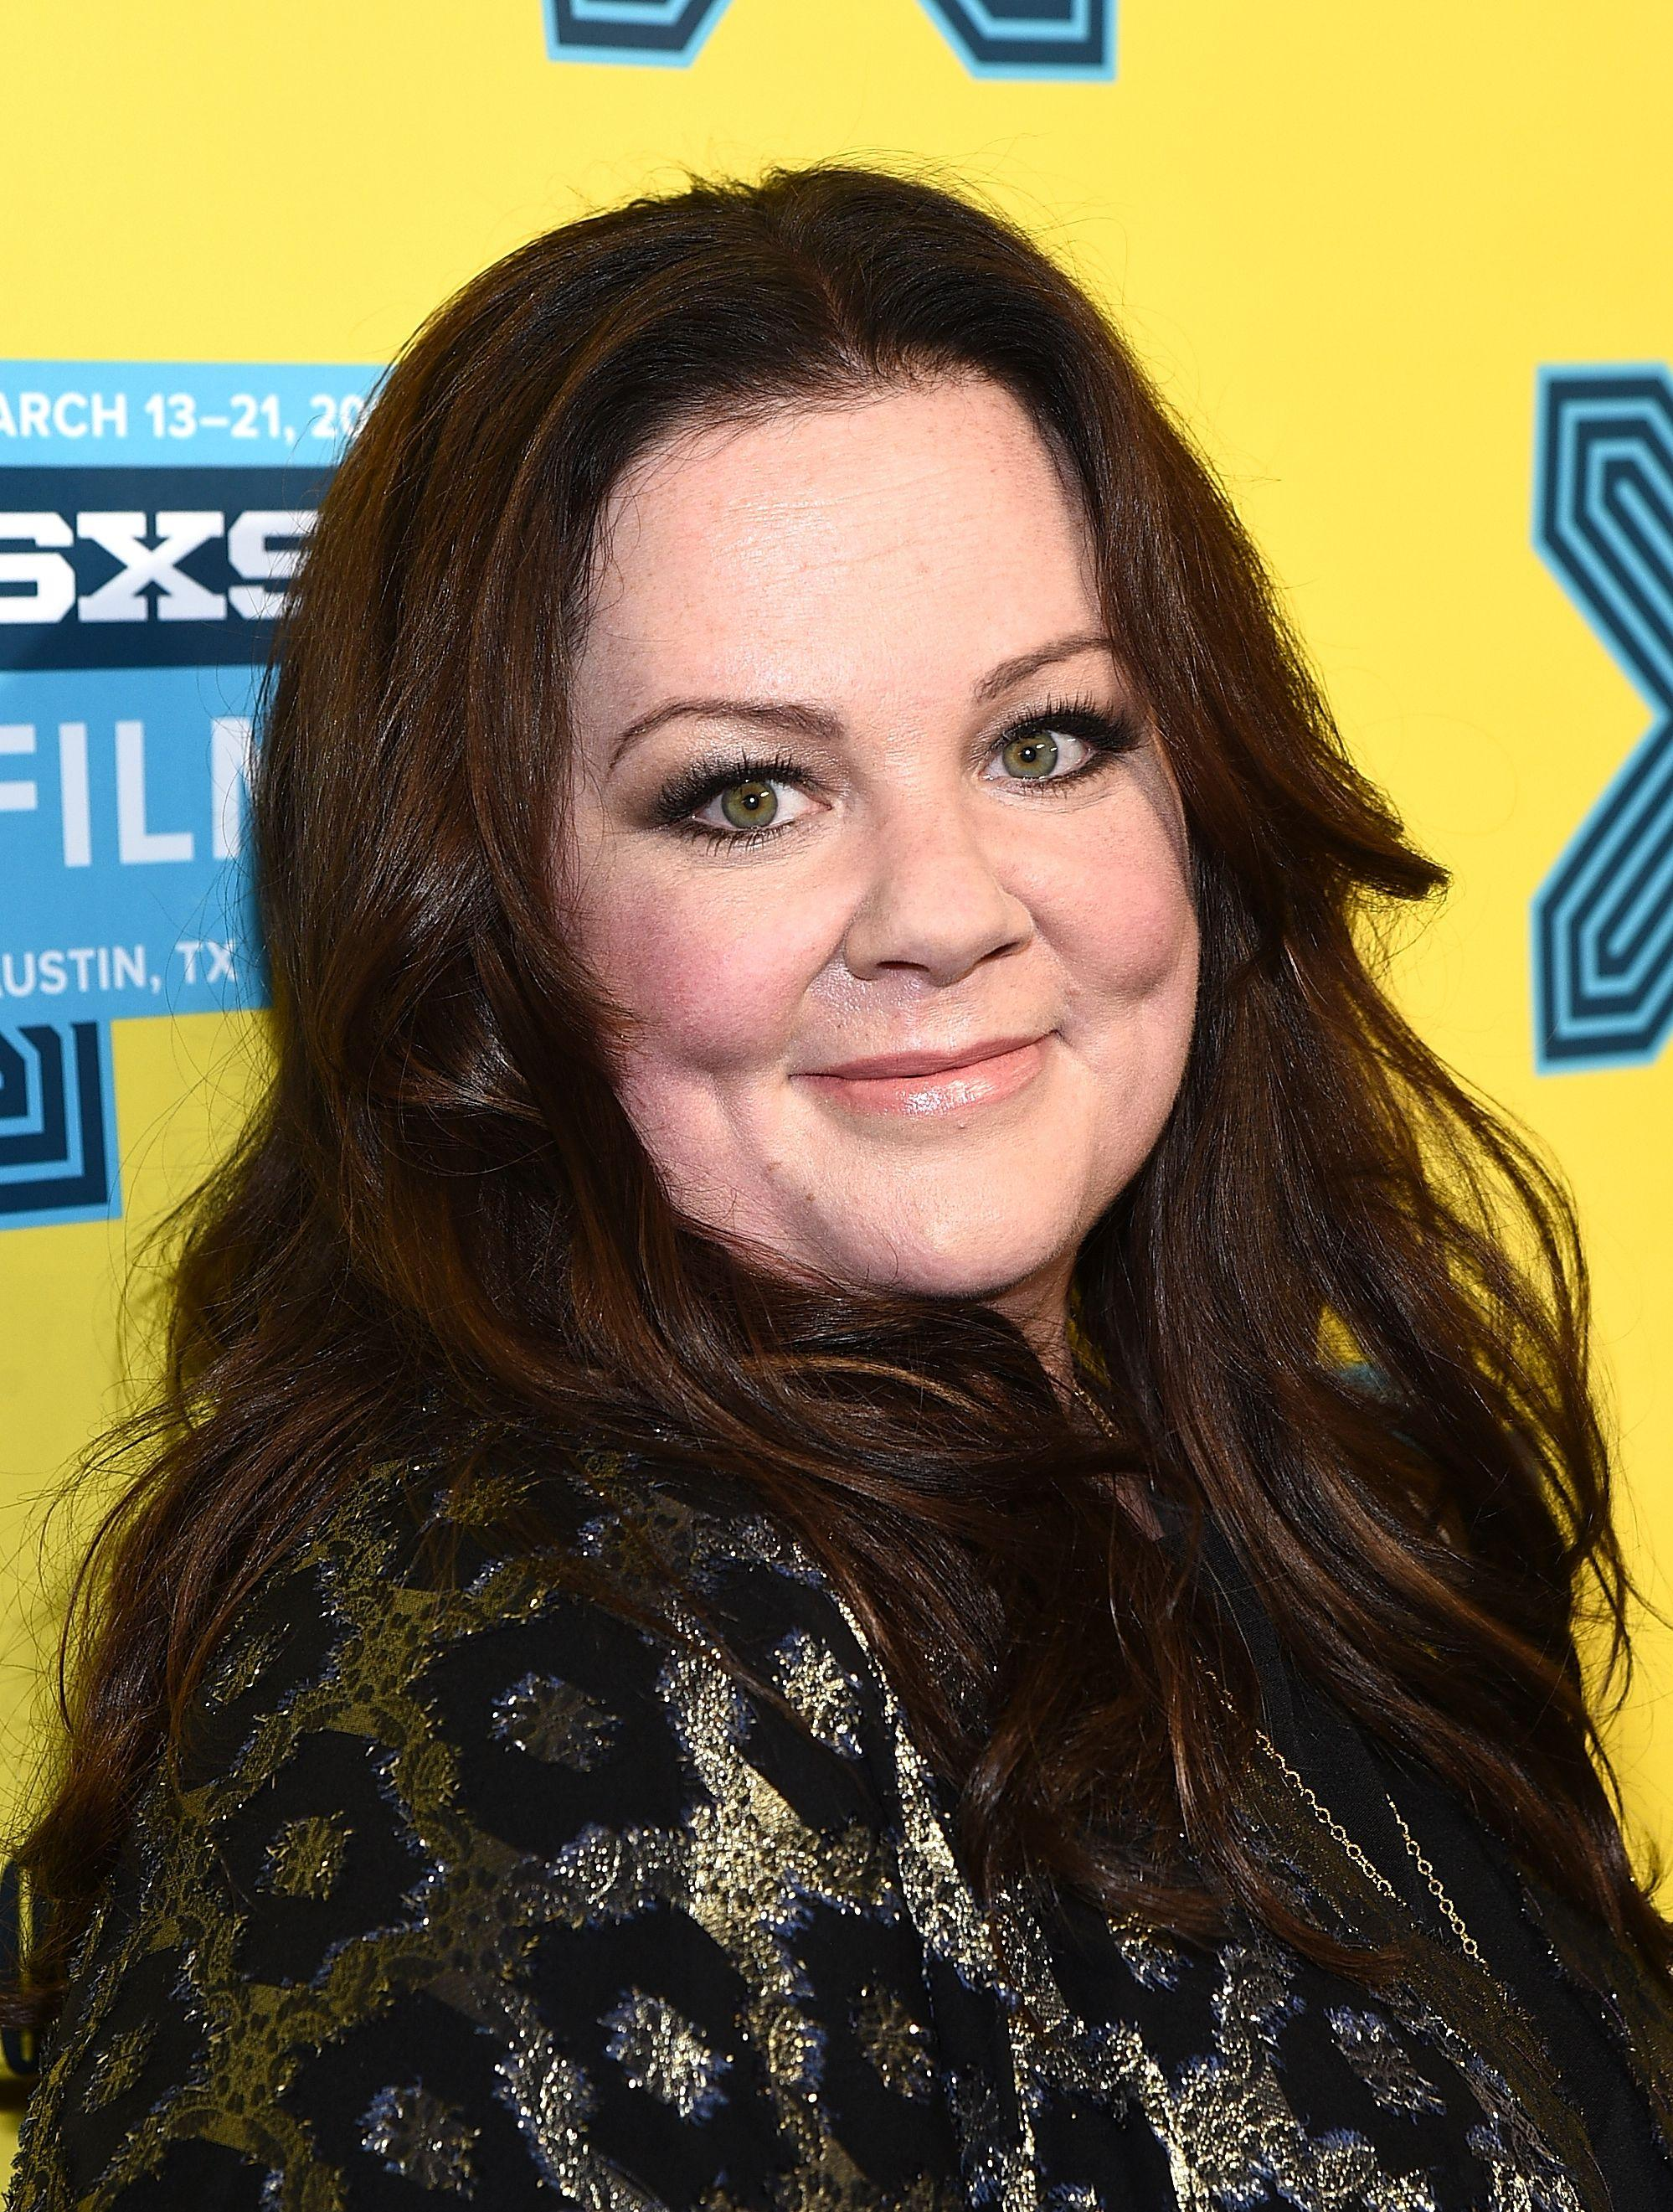 Melissa Mccarthy Wallpapers High Quality | Download Free